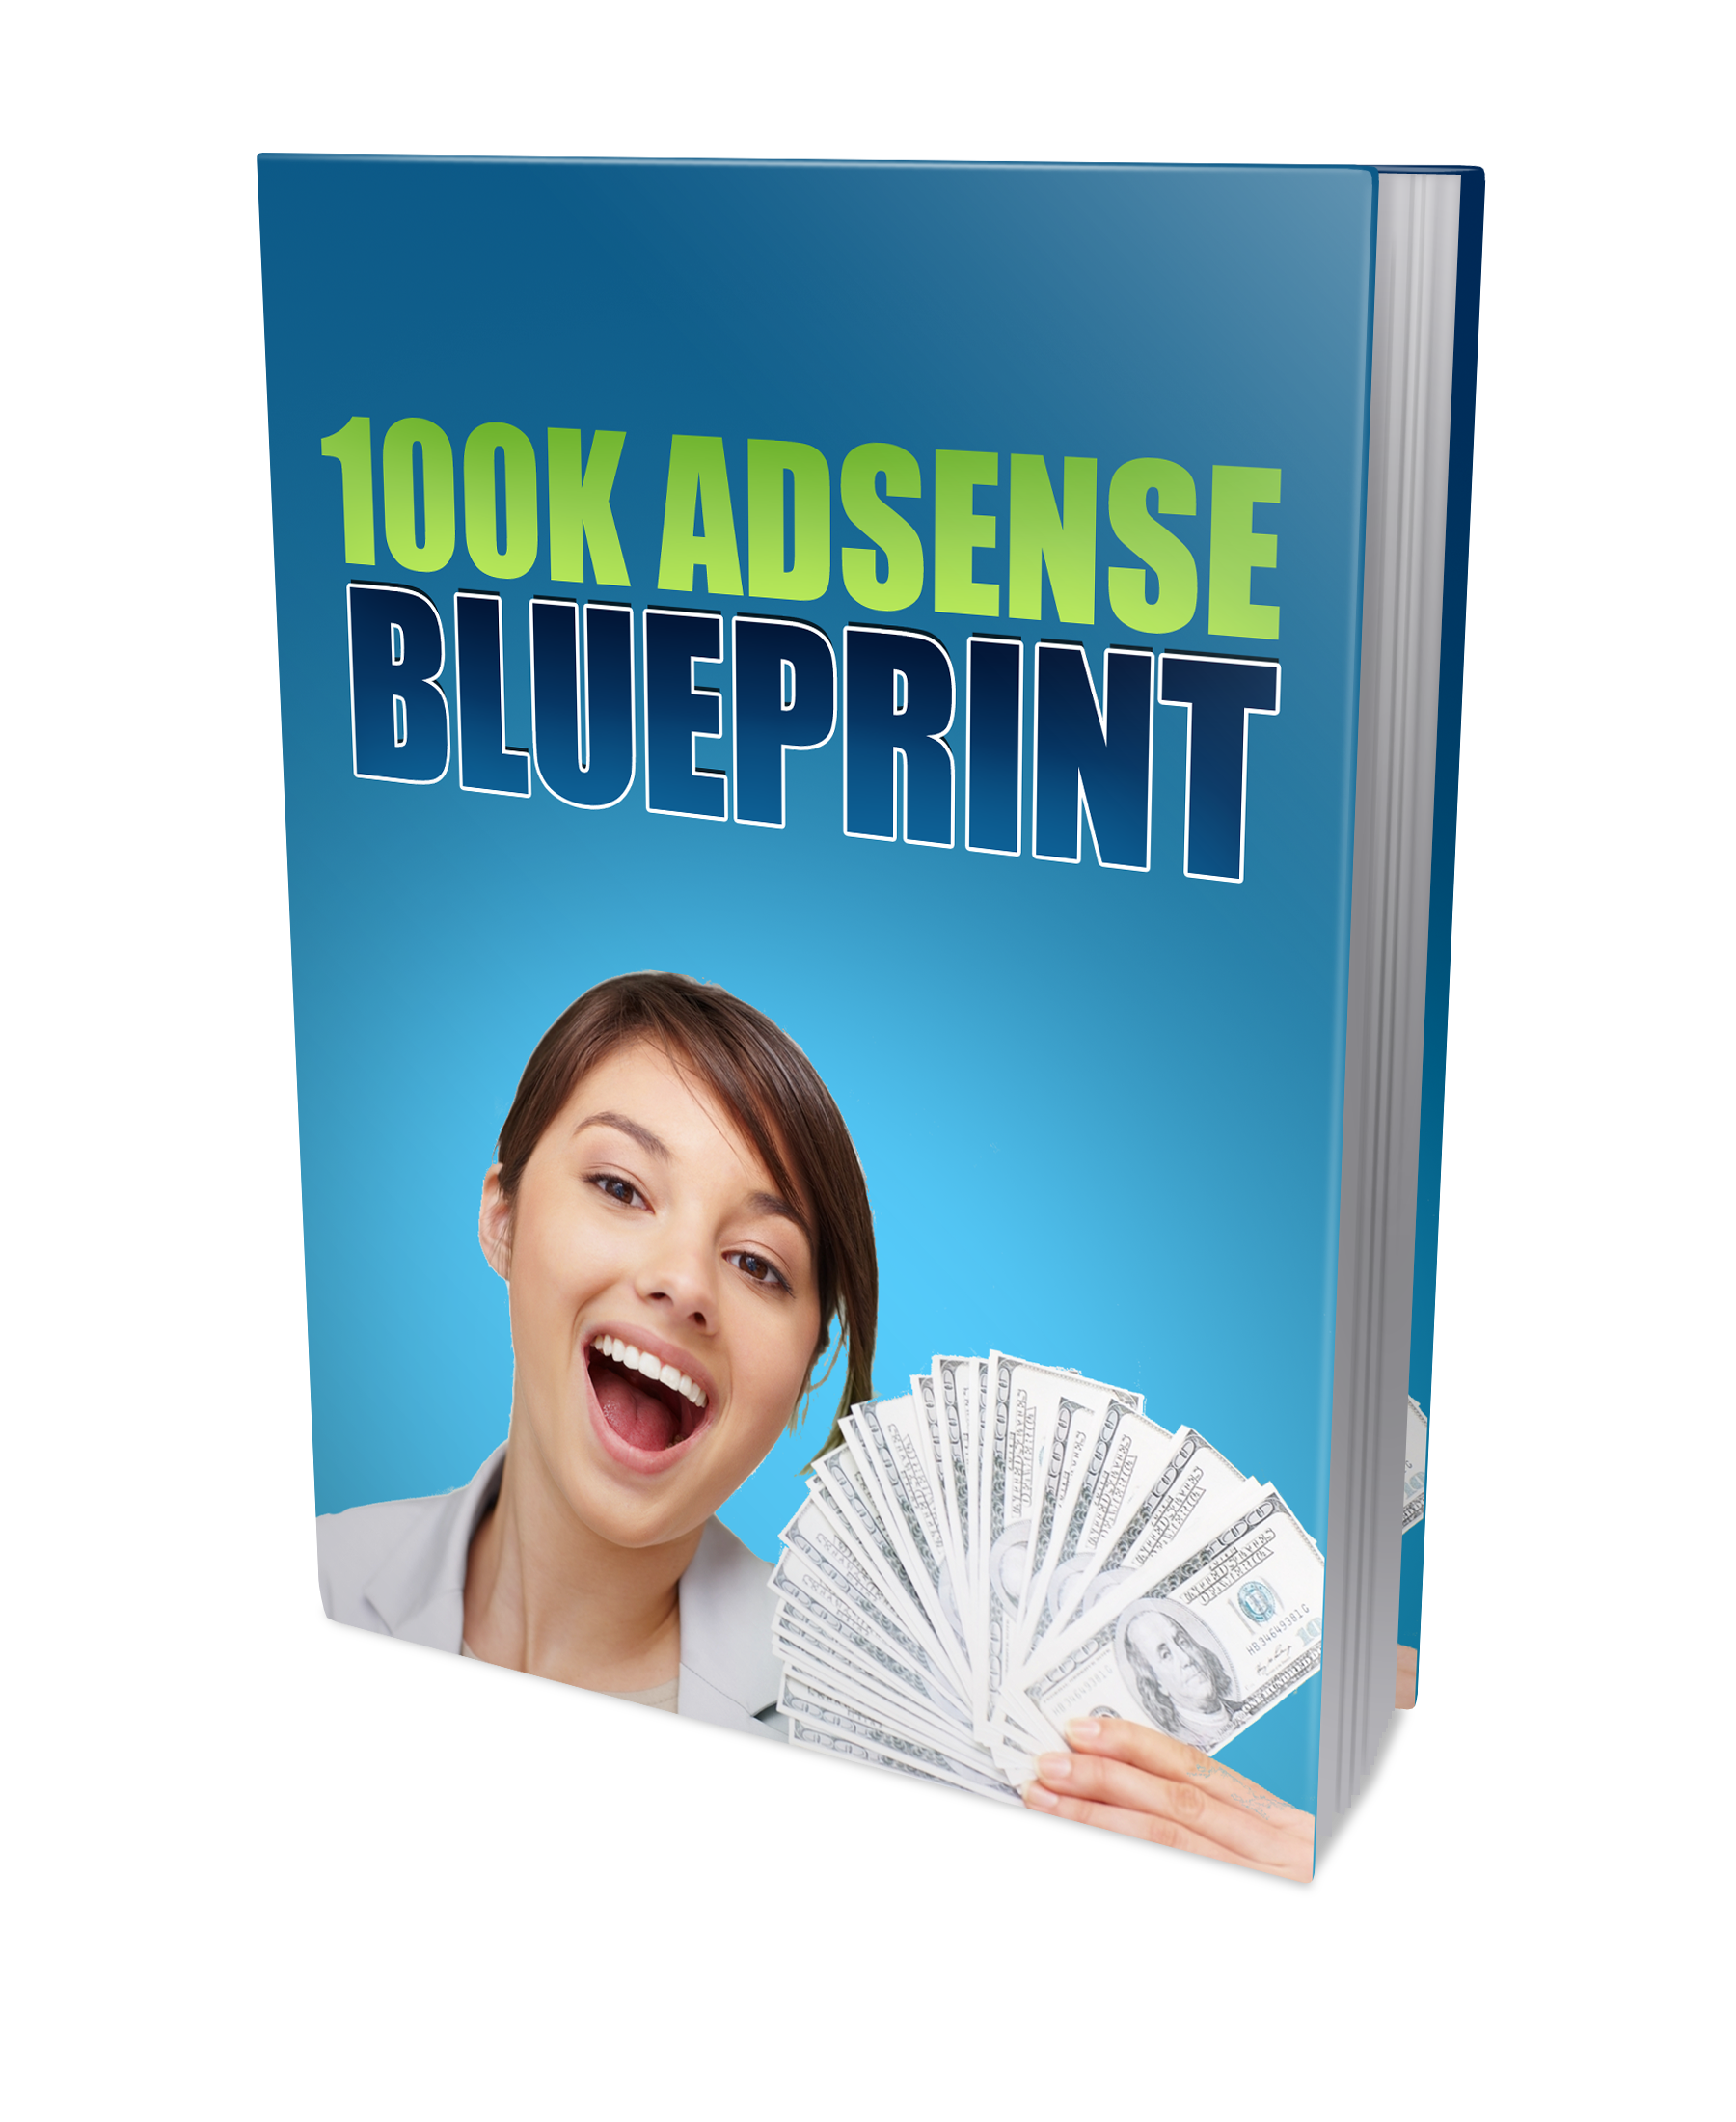 give you 100K Google Adsense Blueprint